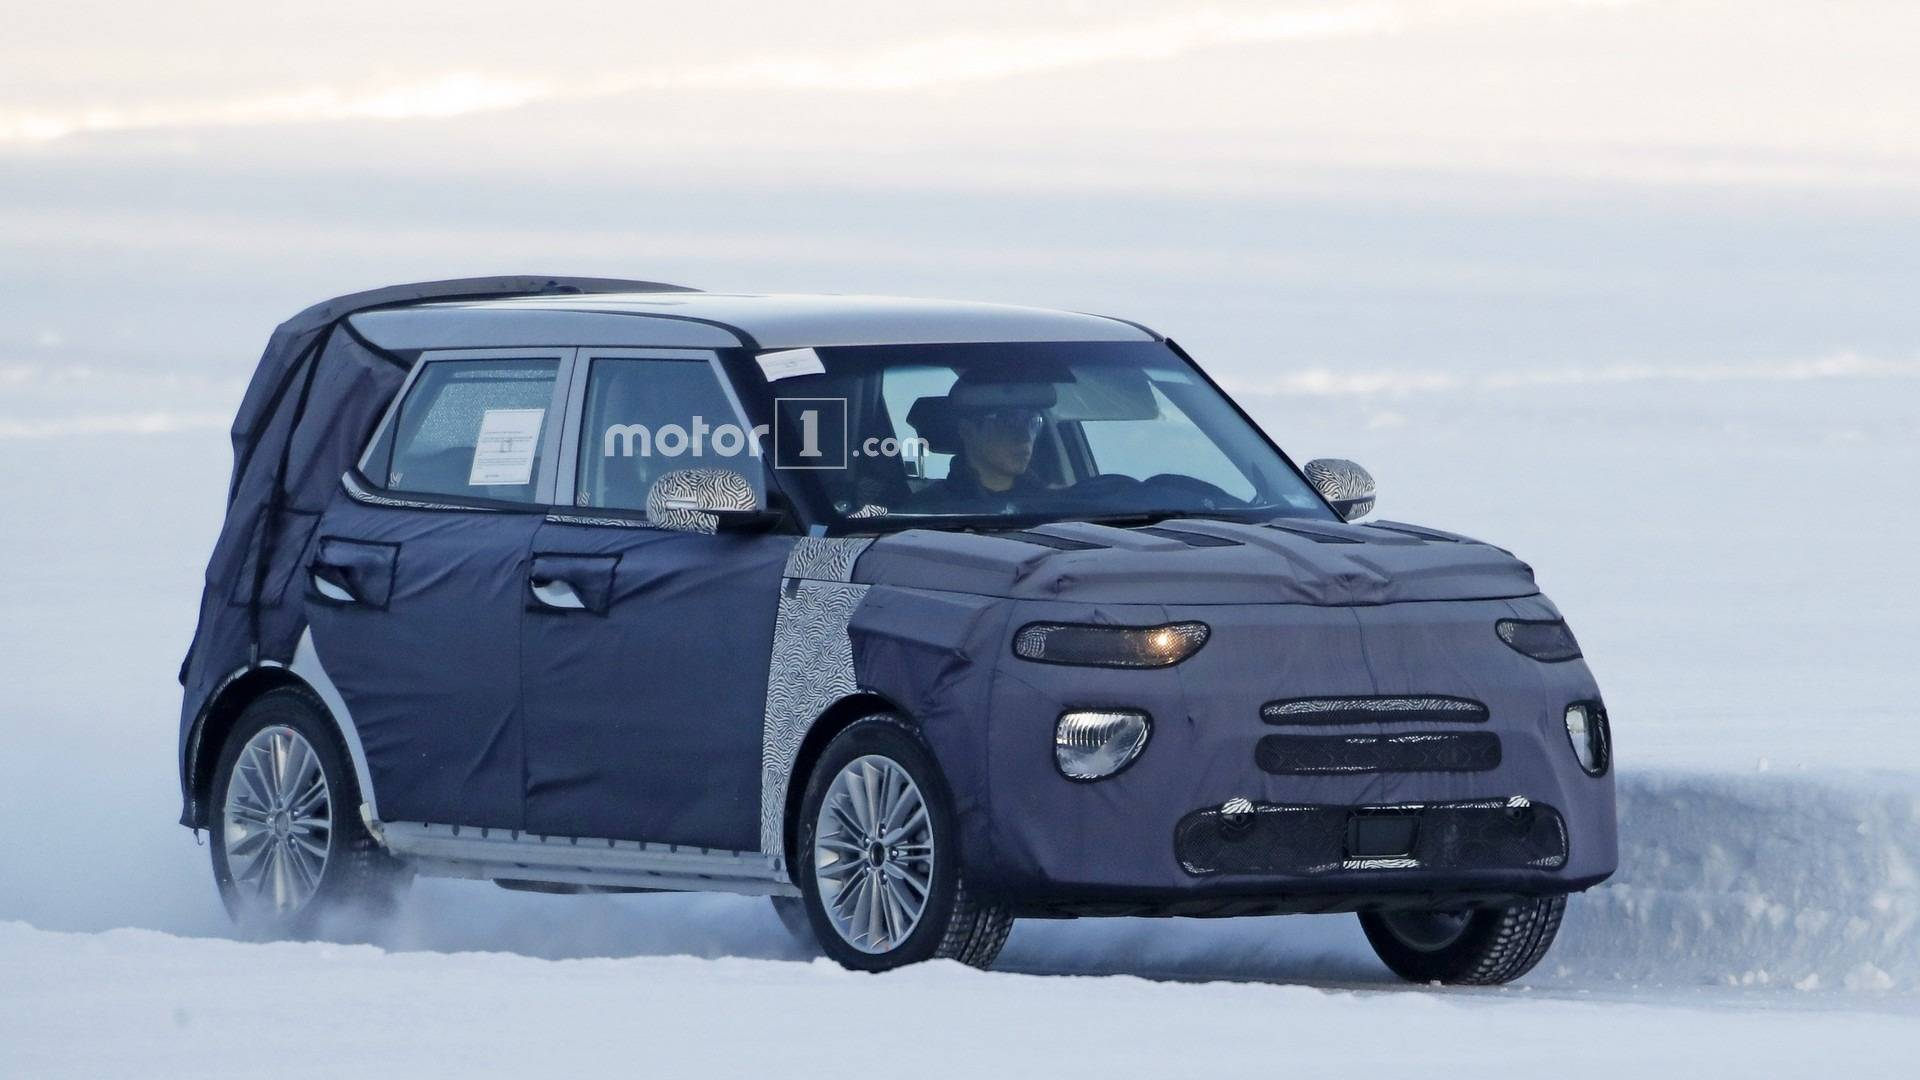 2019 Kia Soul: Coming Redesigned And Possibly With The All-wheel Drive >> Next Gen Kia Soul Spied For The First Time Update